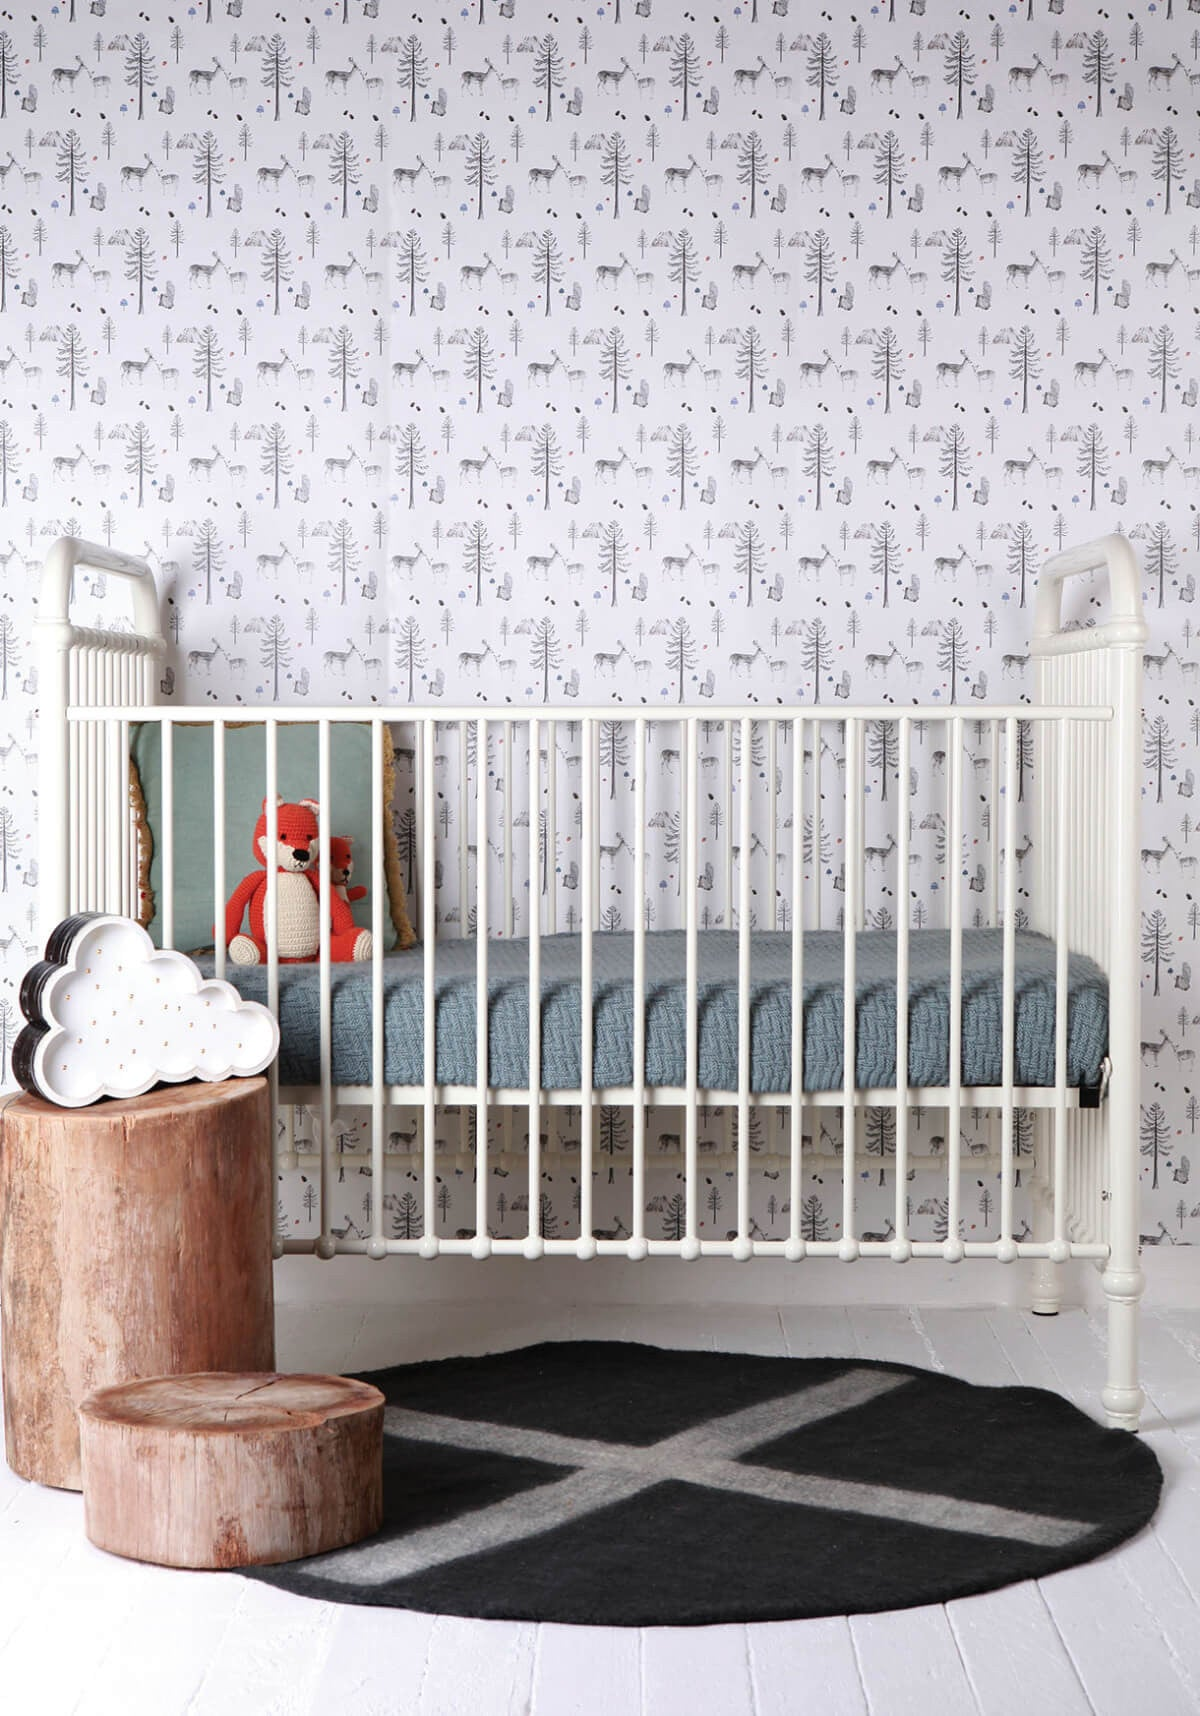 . Sleeping in the Woods Wallpaper from the Love Mae Collection by